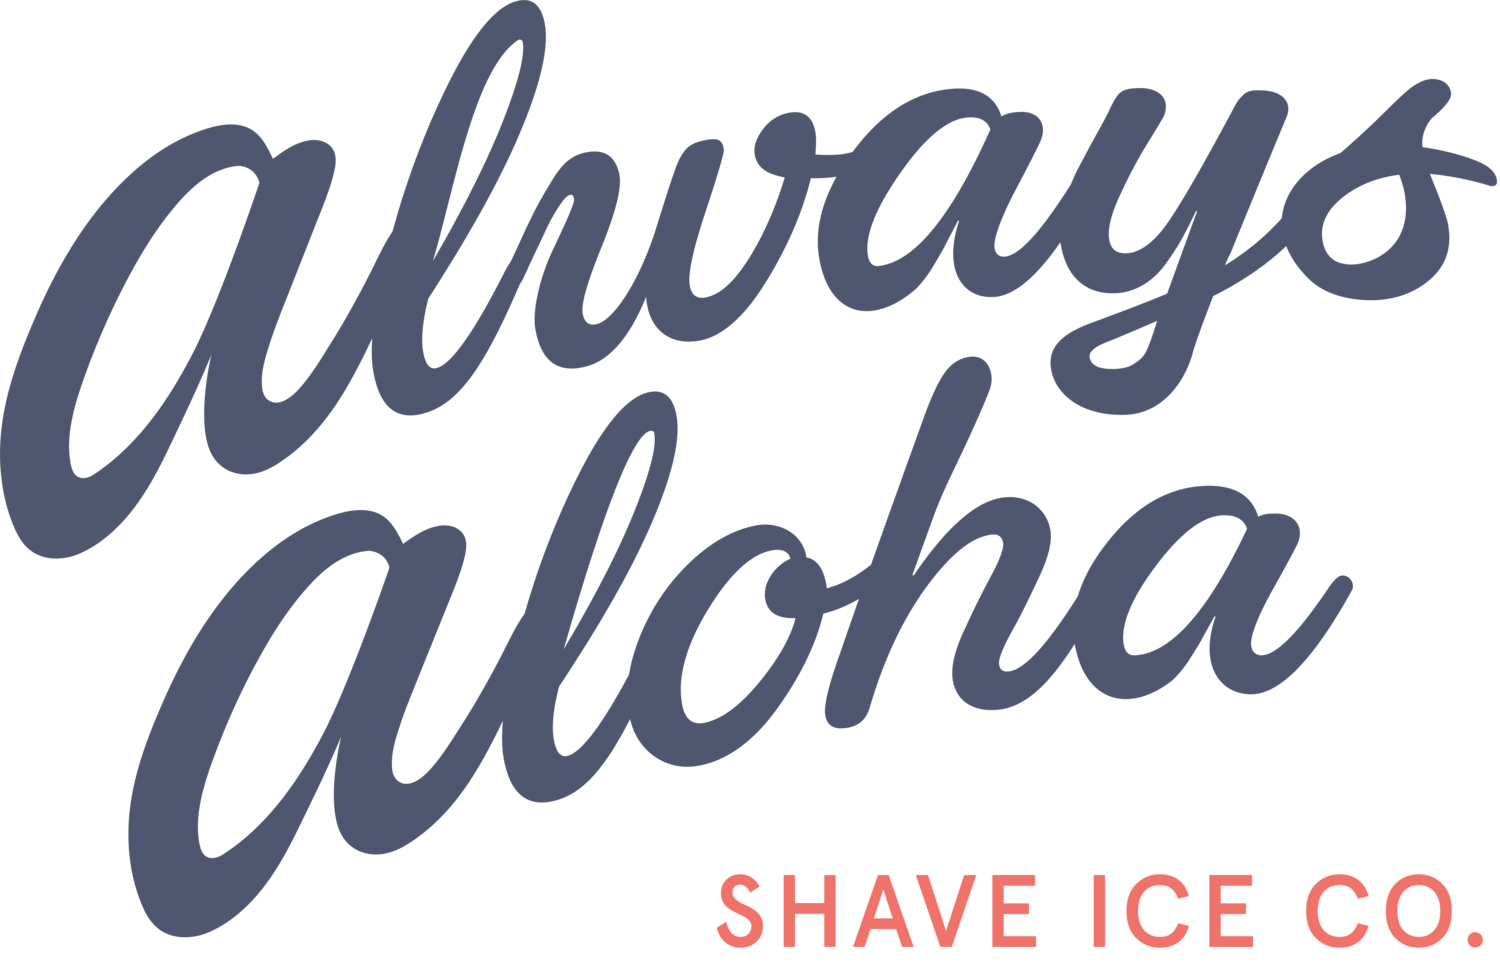 Always Aloha Shave Ice Co.